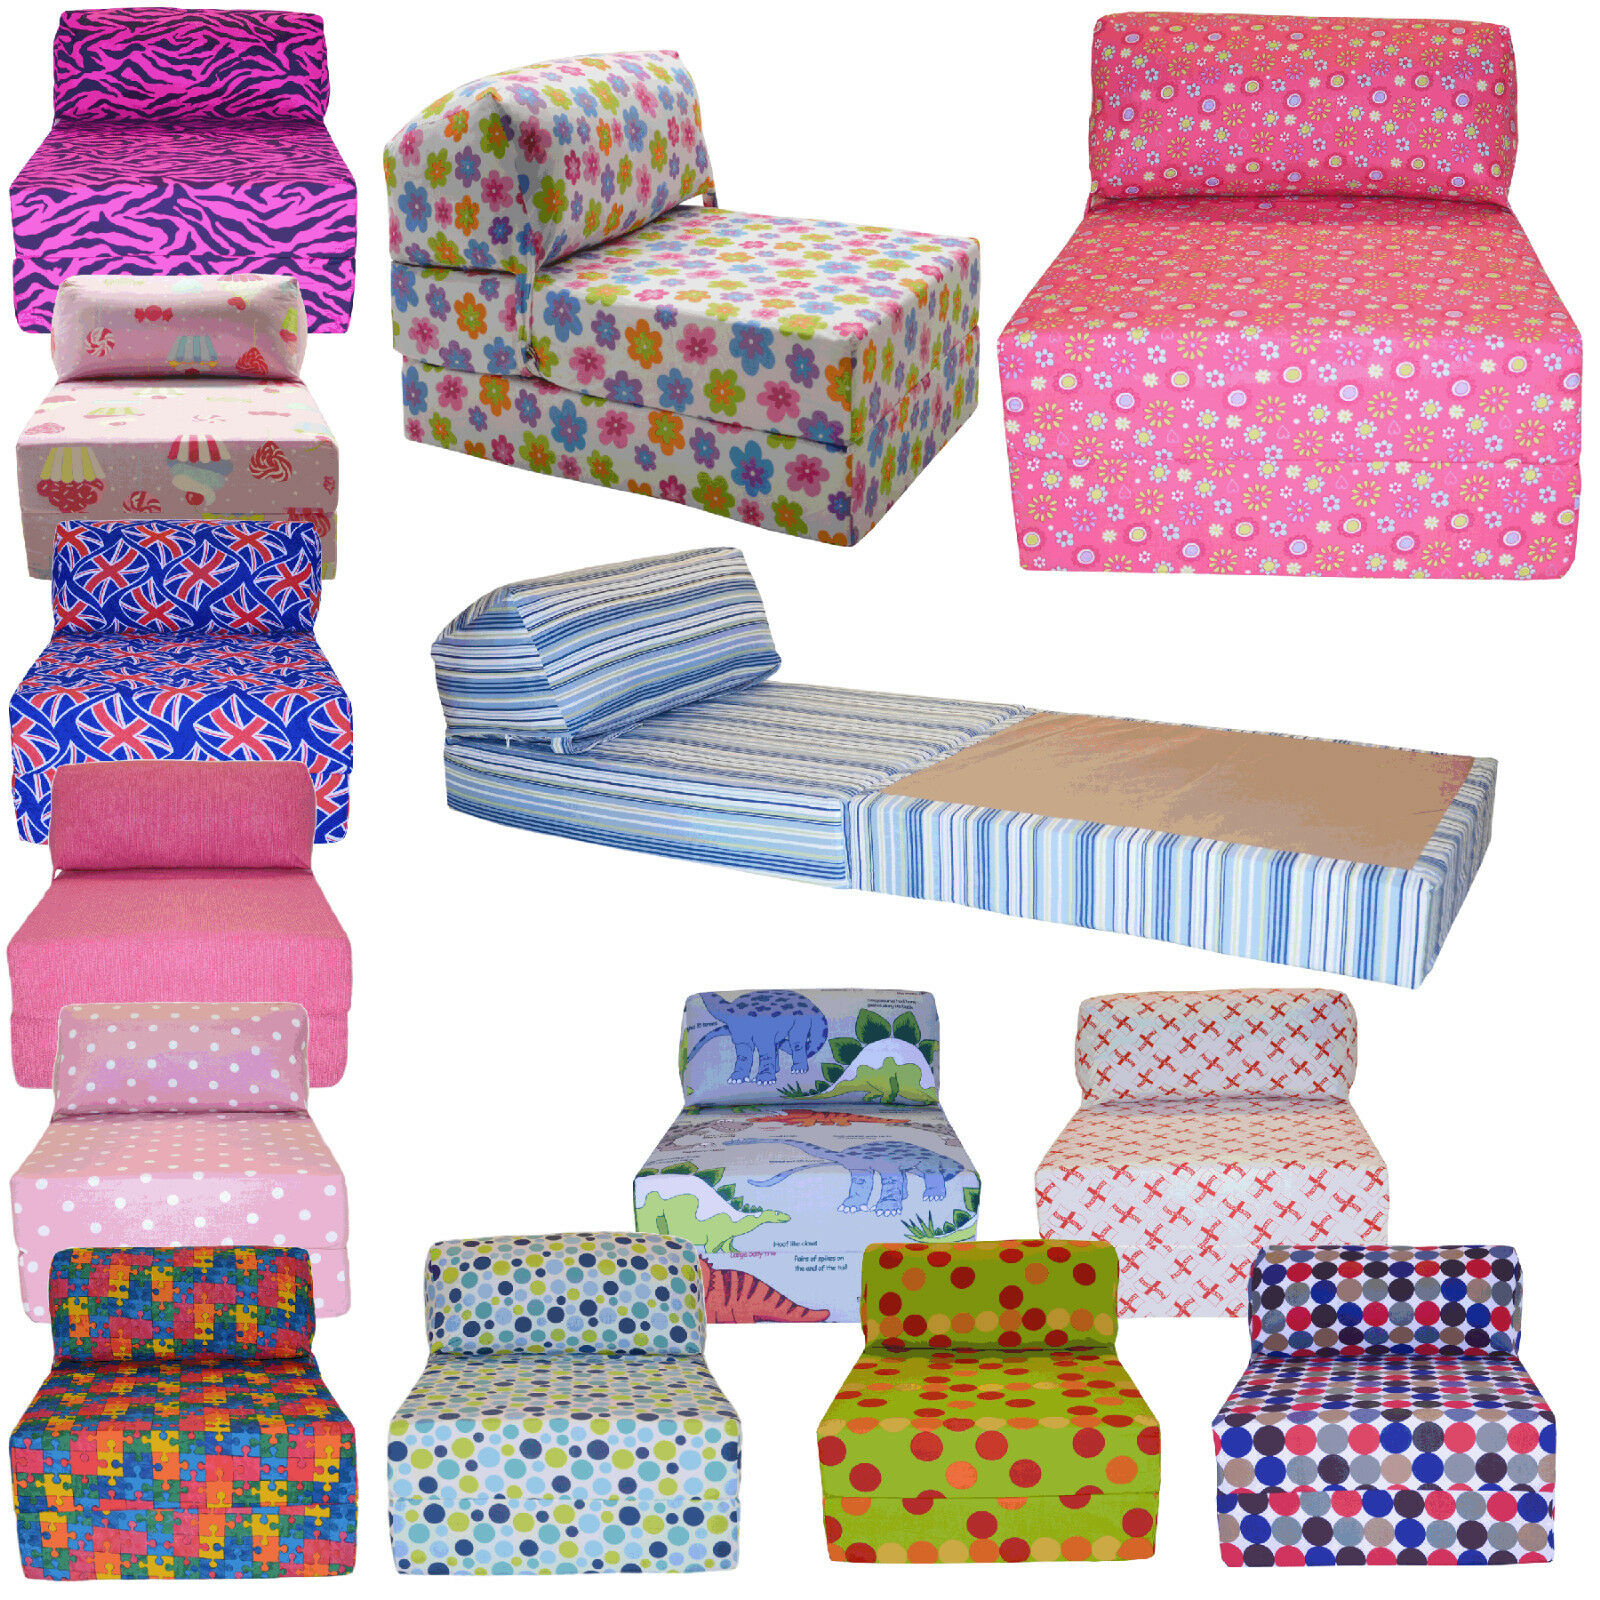 Single Fold Out Sofa Bed Cotton Print Single Chair Bed Z Guest Fold Out Futon Sofa